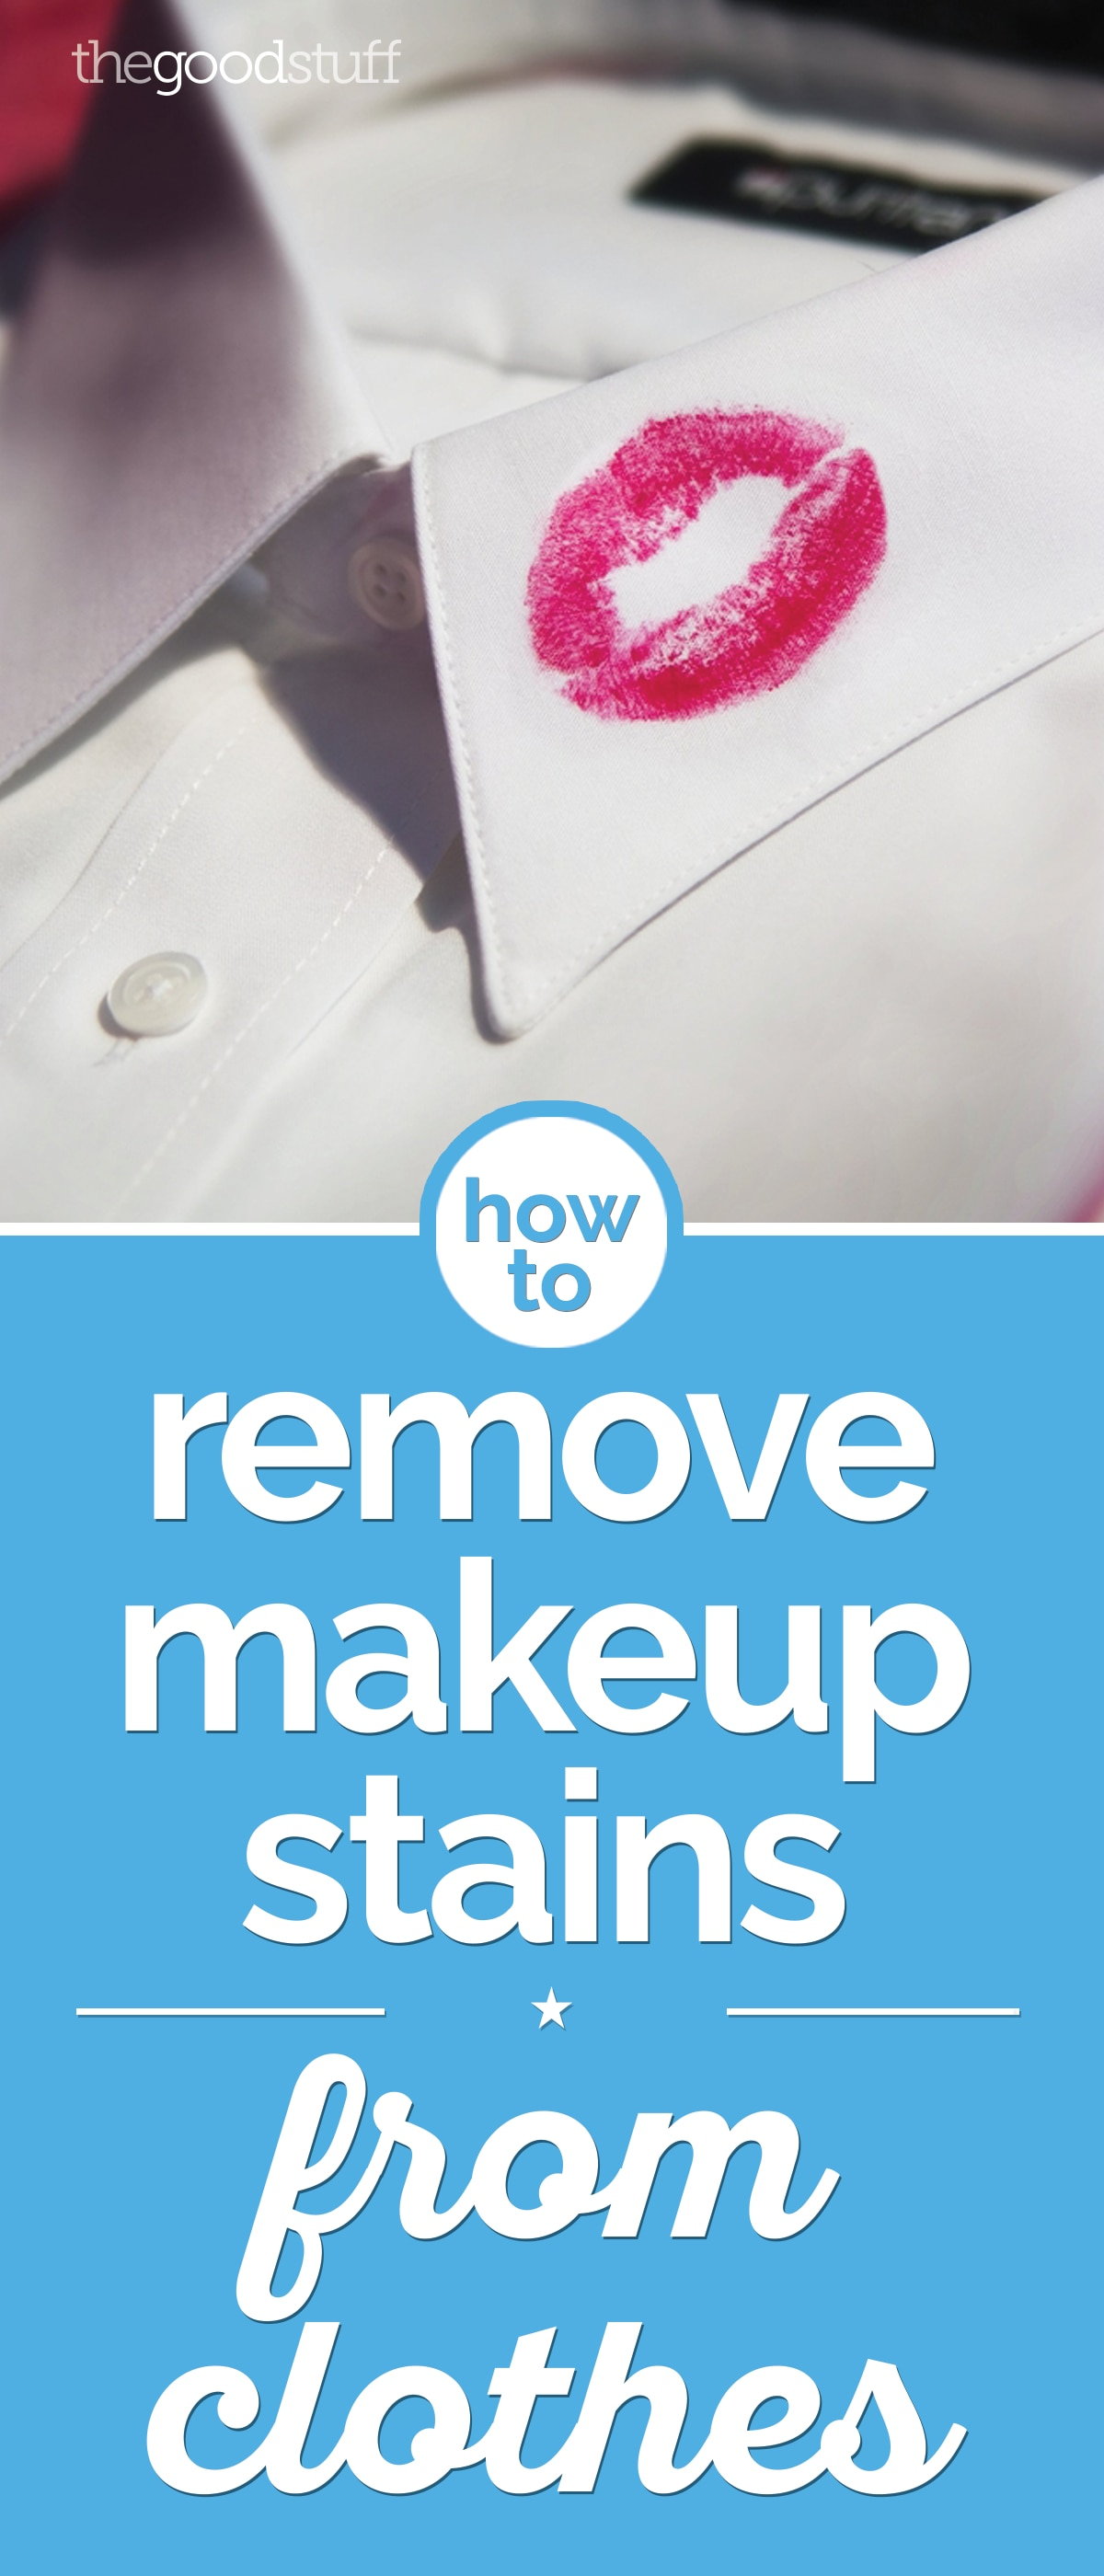 How To Remove Makeup Stains From Clothes Thegoodstuff